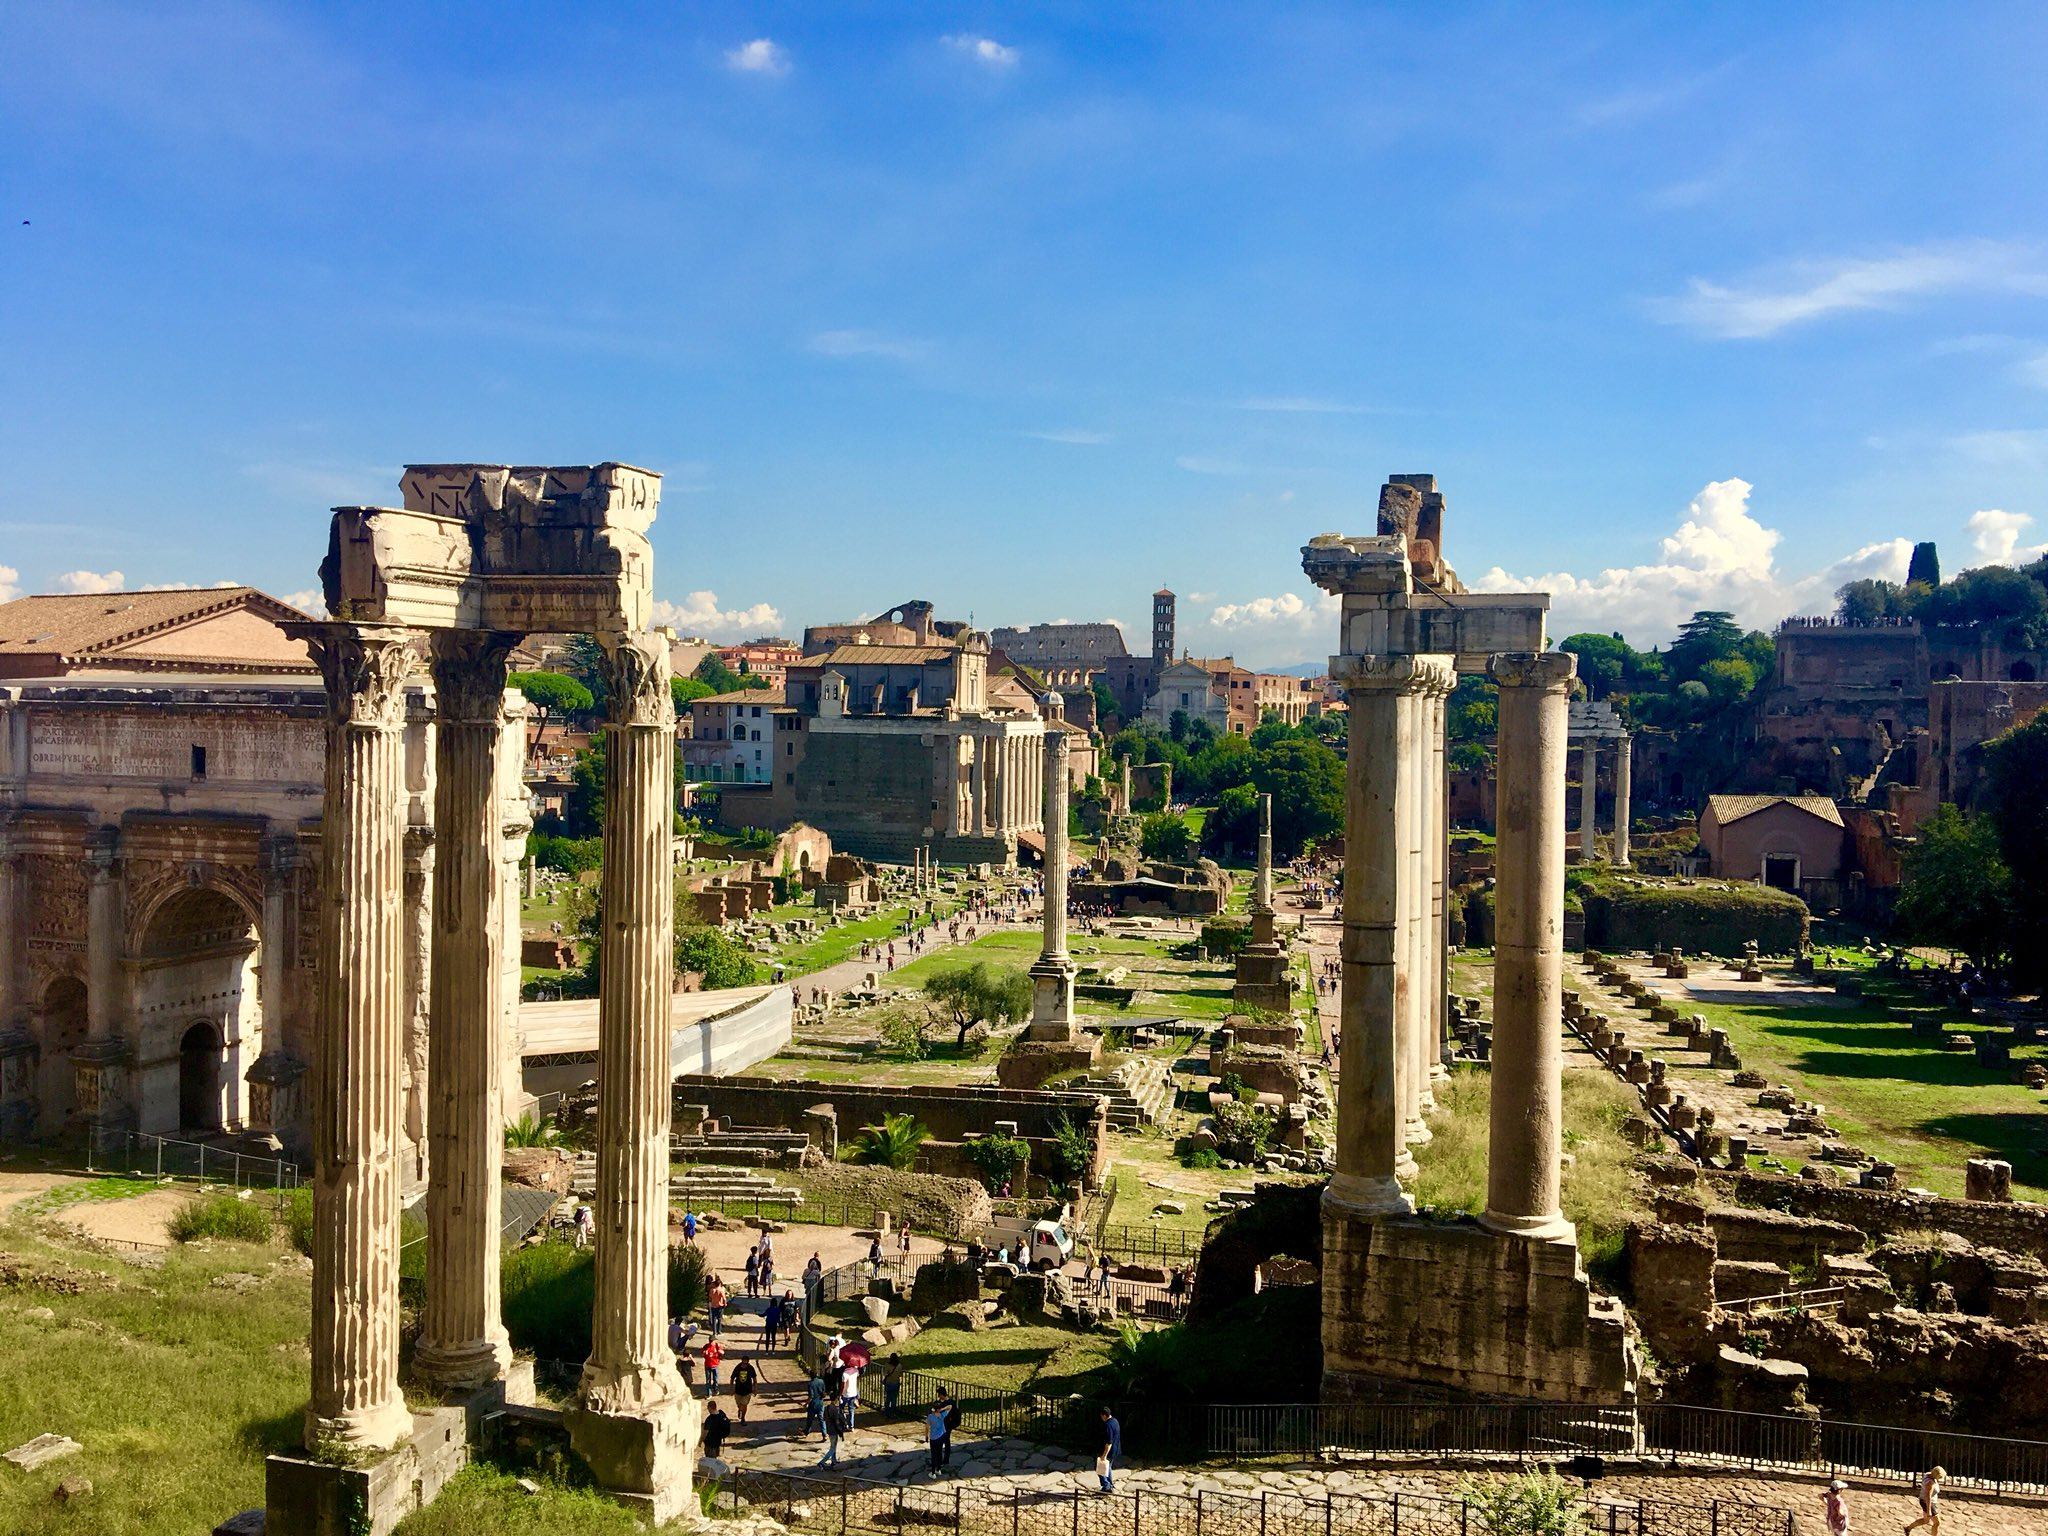 Odyssey Italy 2018, View from the Capitoline Museum deck over looking the Roman Forum. https://t.co/rCikoOUOmy